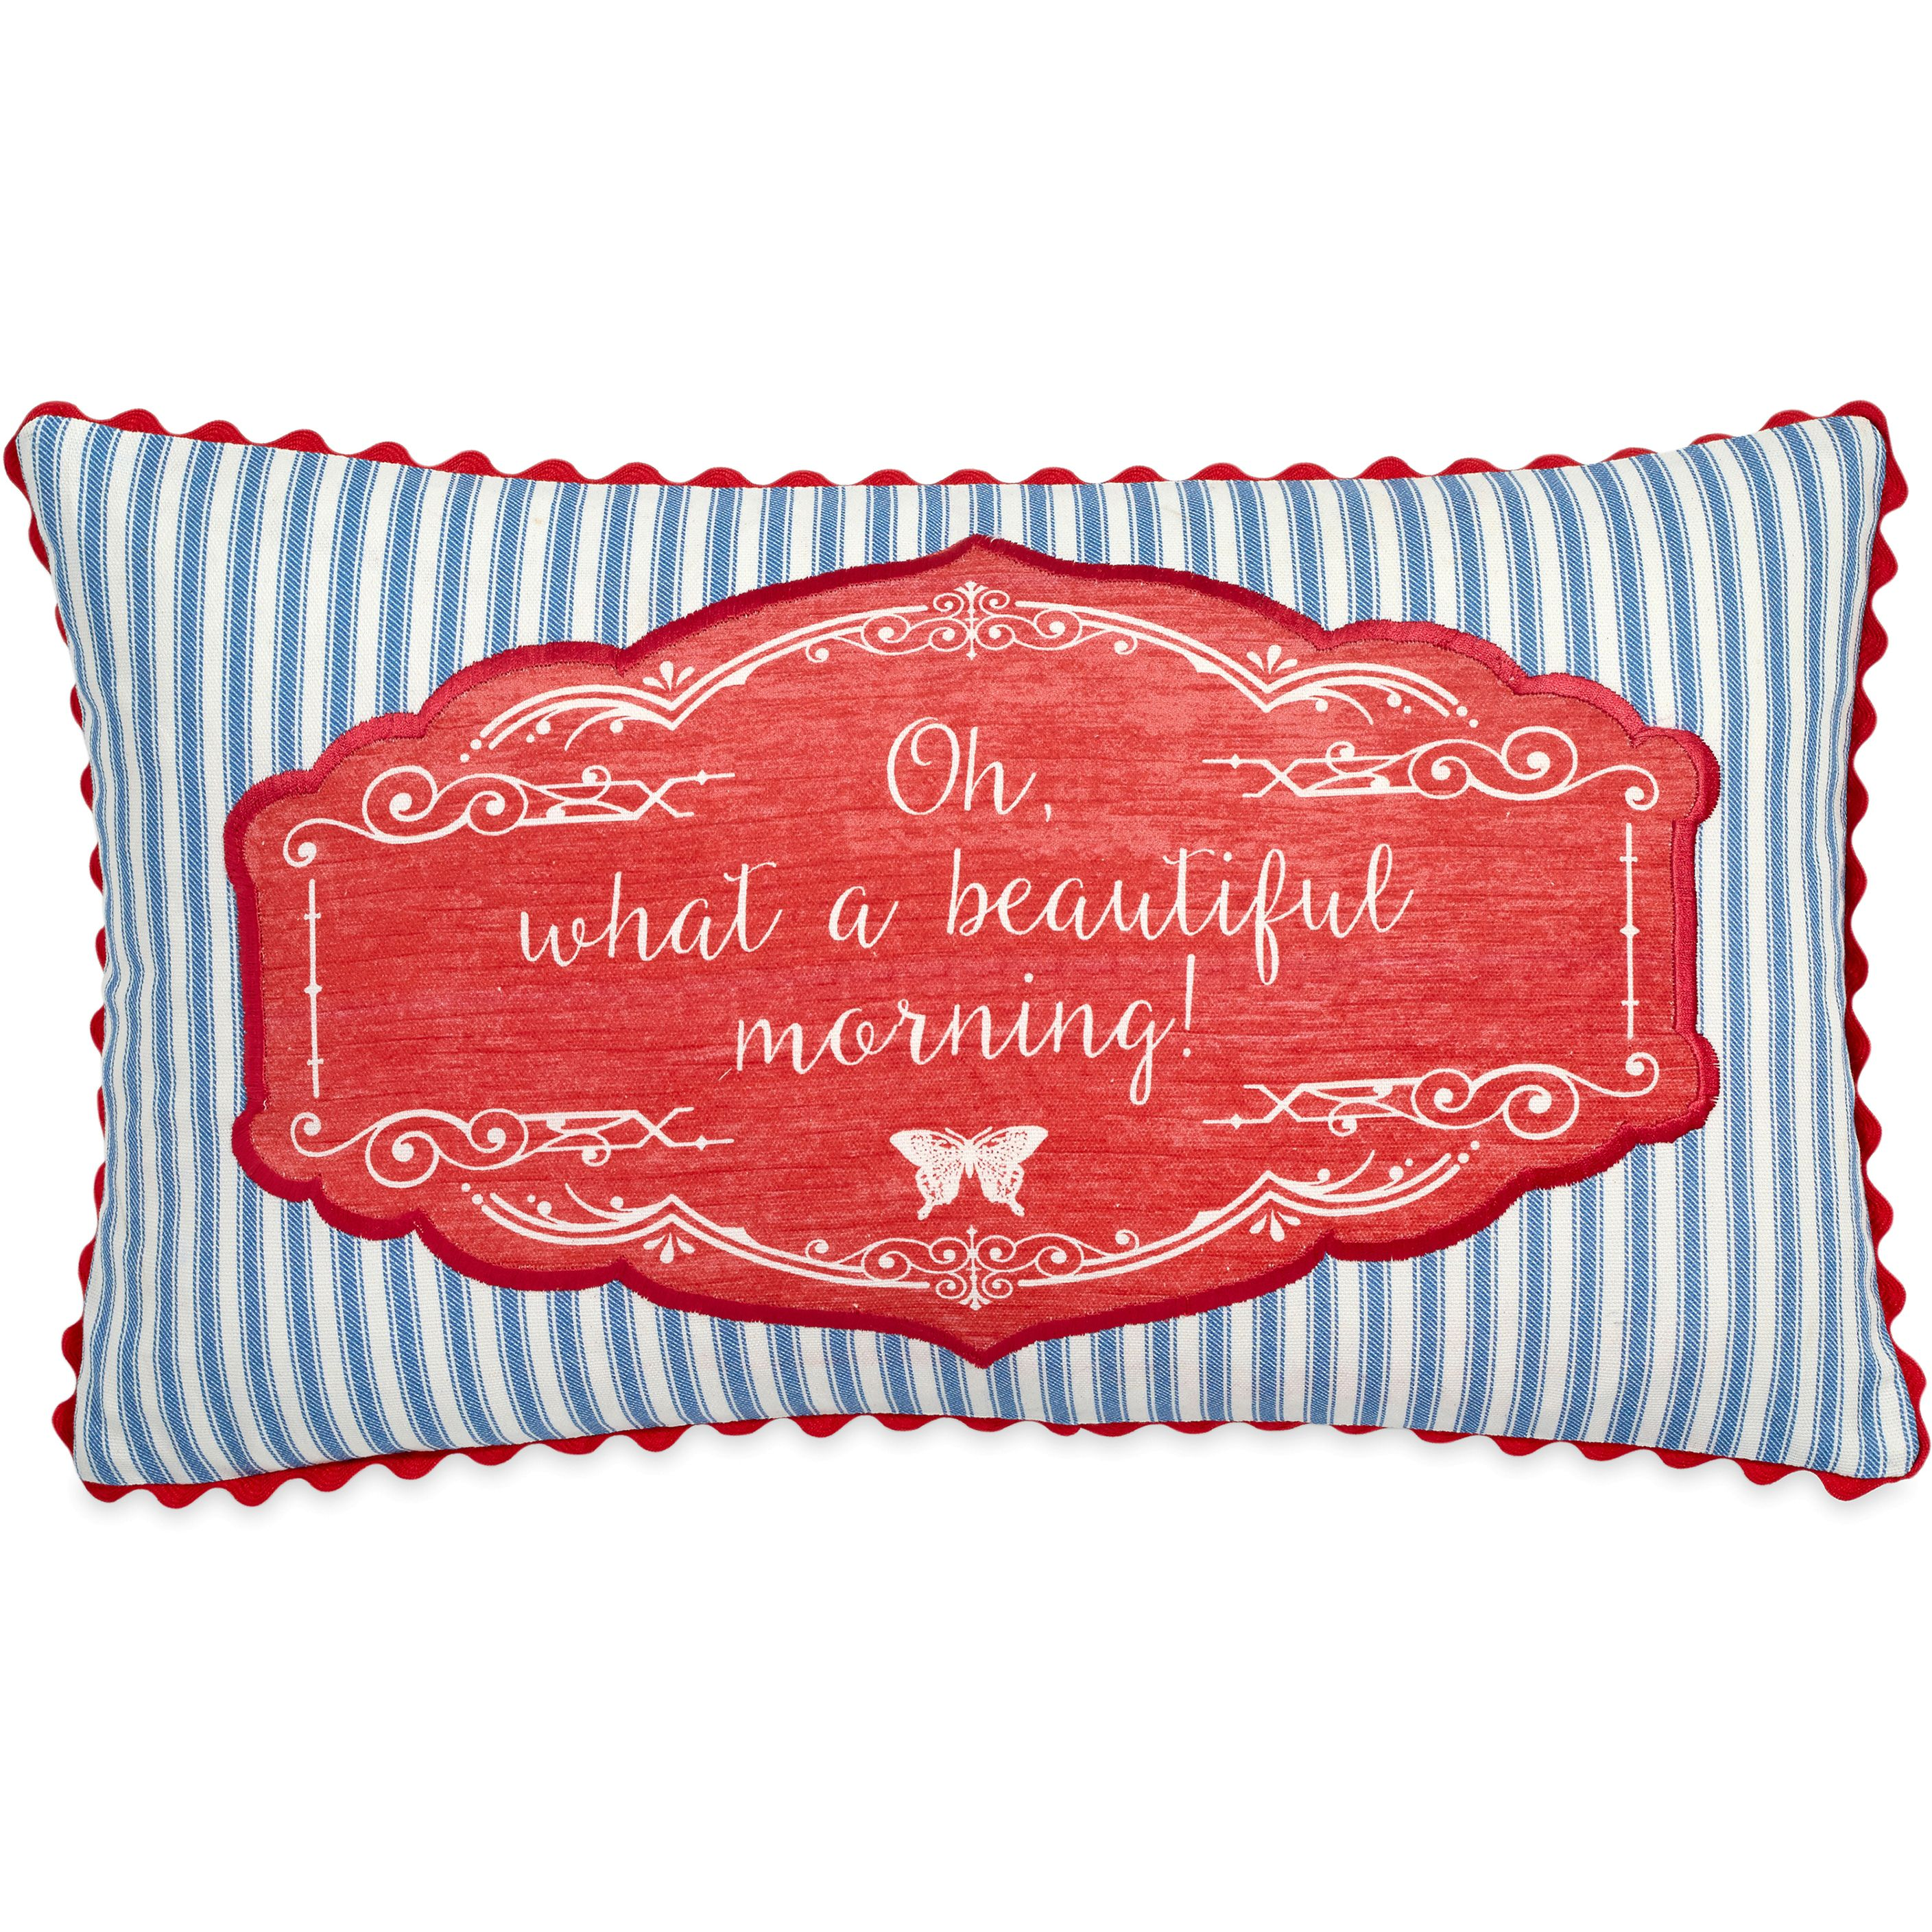 The Pioneer Woman Beautiful Morning 11x20 Decorative Pillow by CHF Industries, Inc.